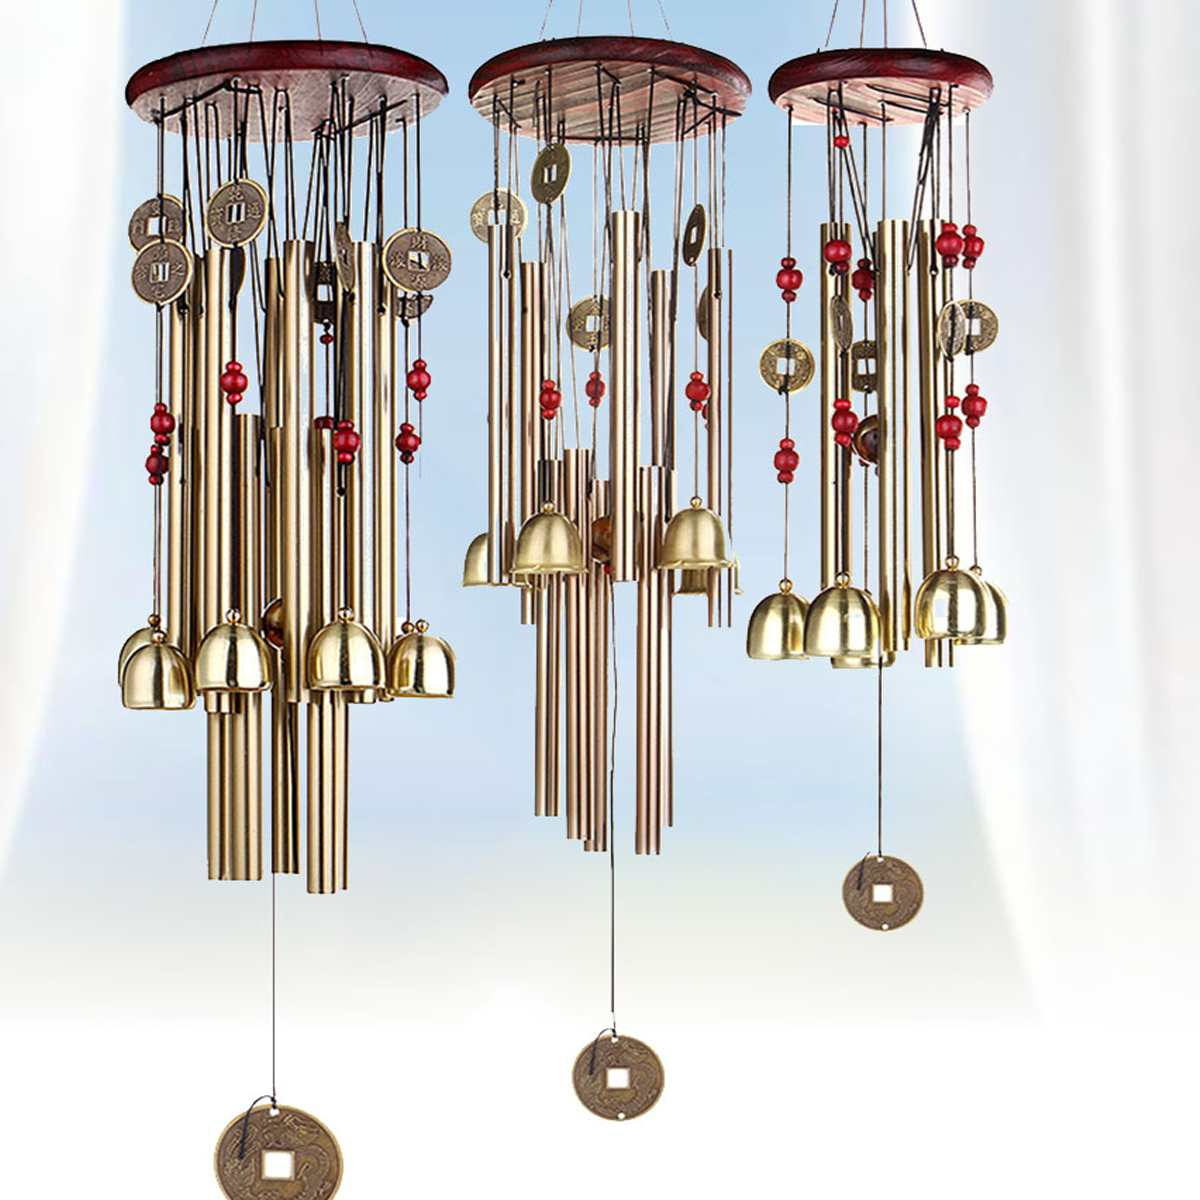 Chinese Carp Fish Copper Bell Lucky Feng Shui Hanging Wind Chime 3 Bells